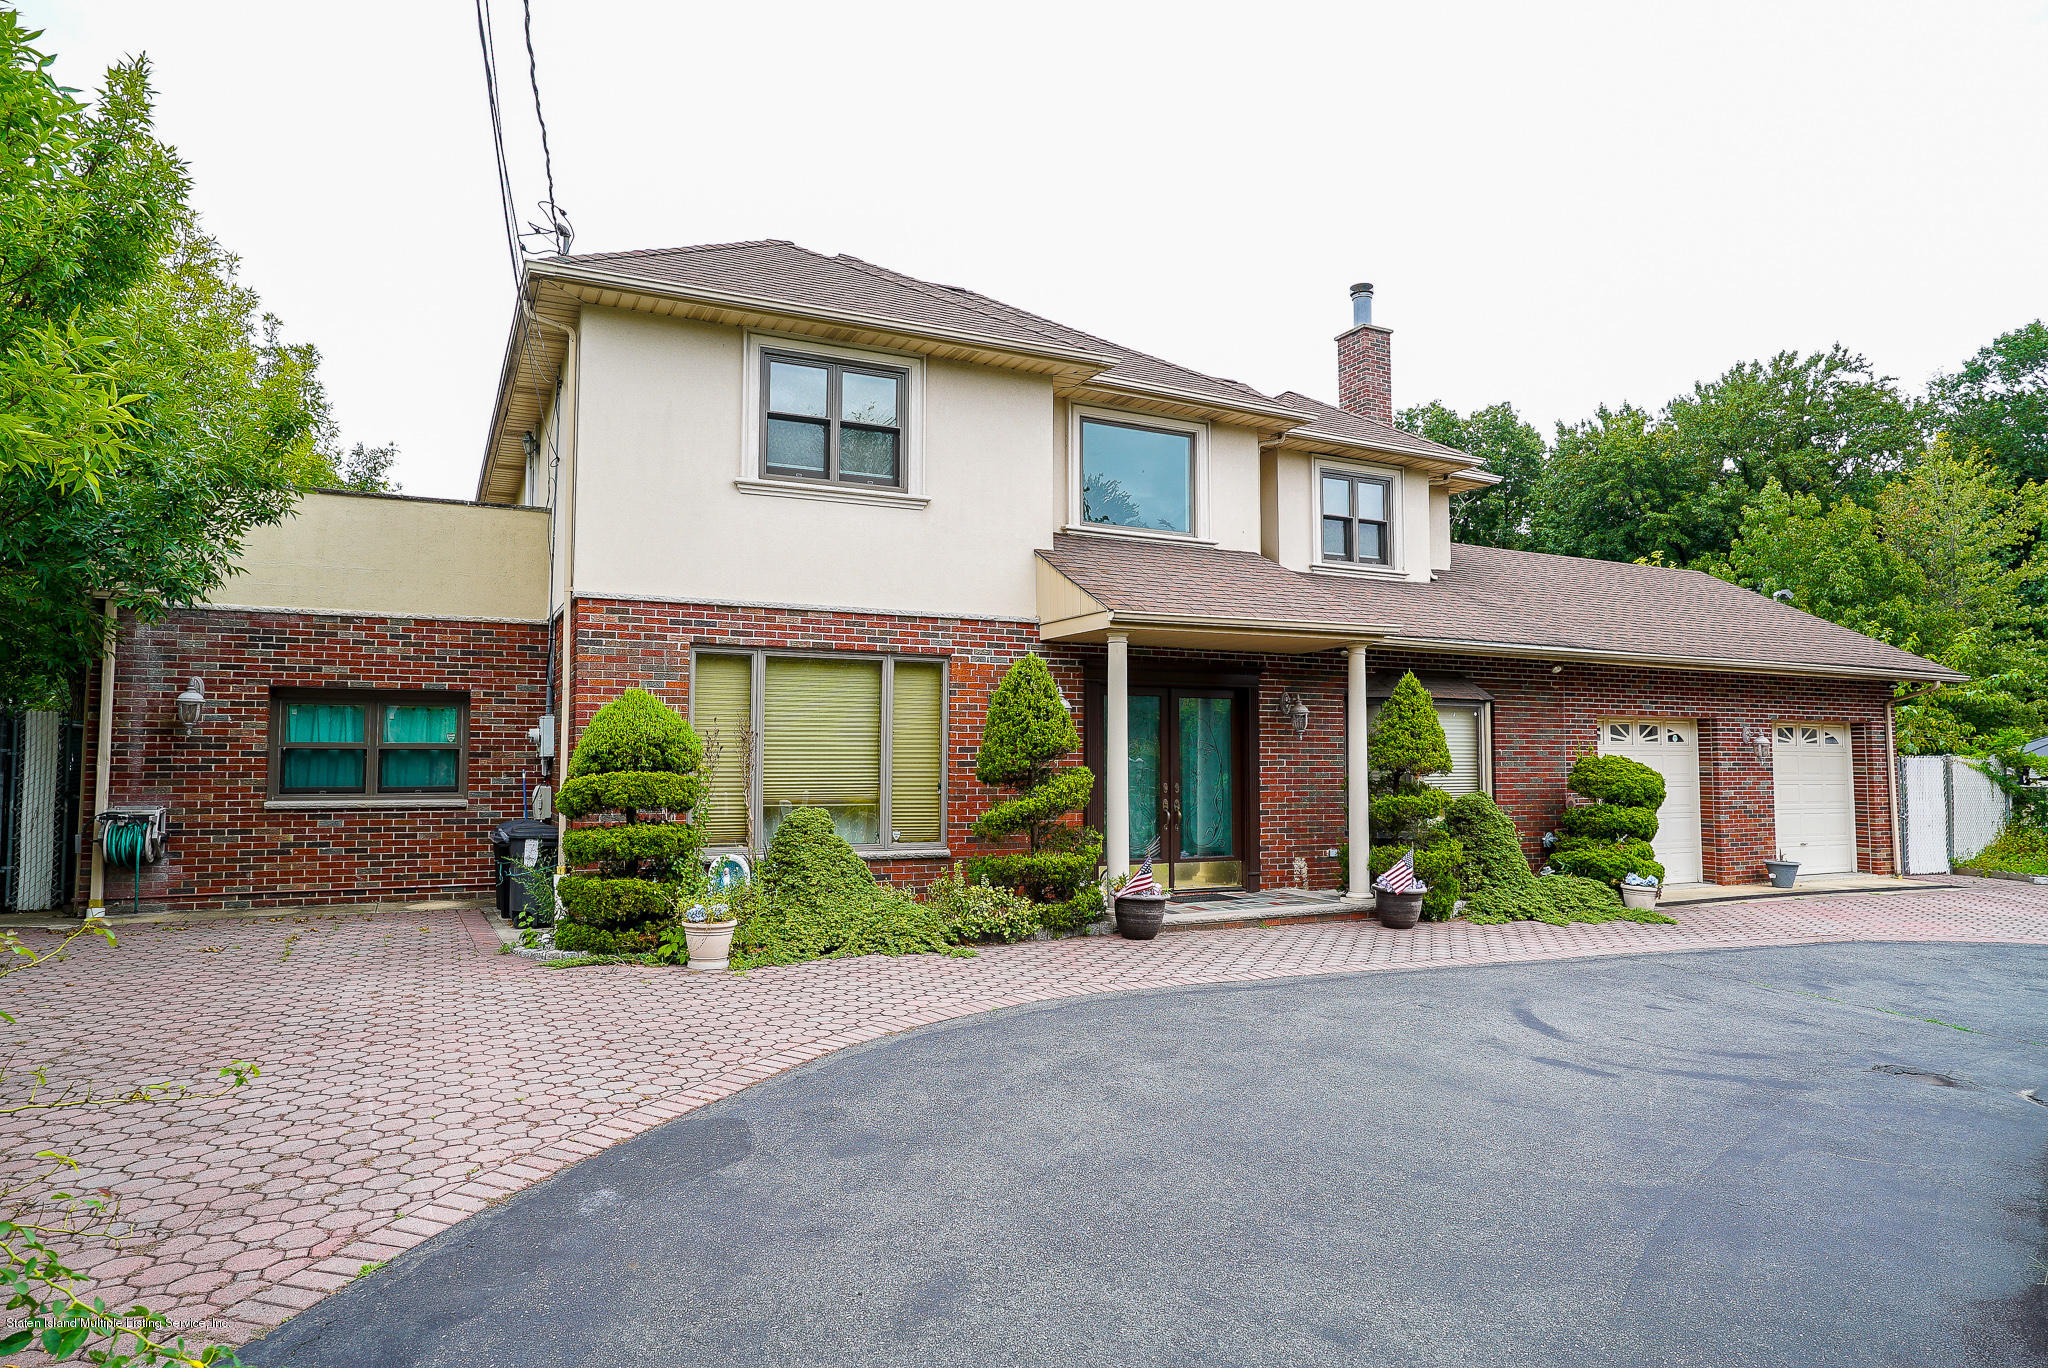 Single Family - Detached 81 Sharrotts Road  Staten Island, NY 10309, MLS-1140126-3